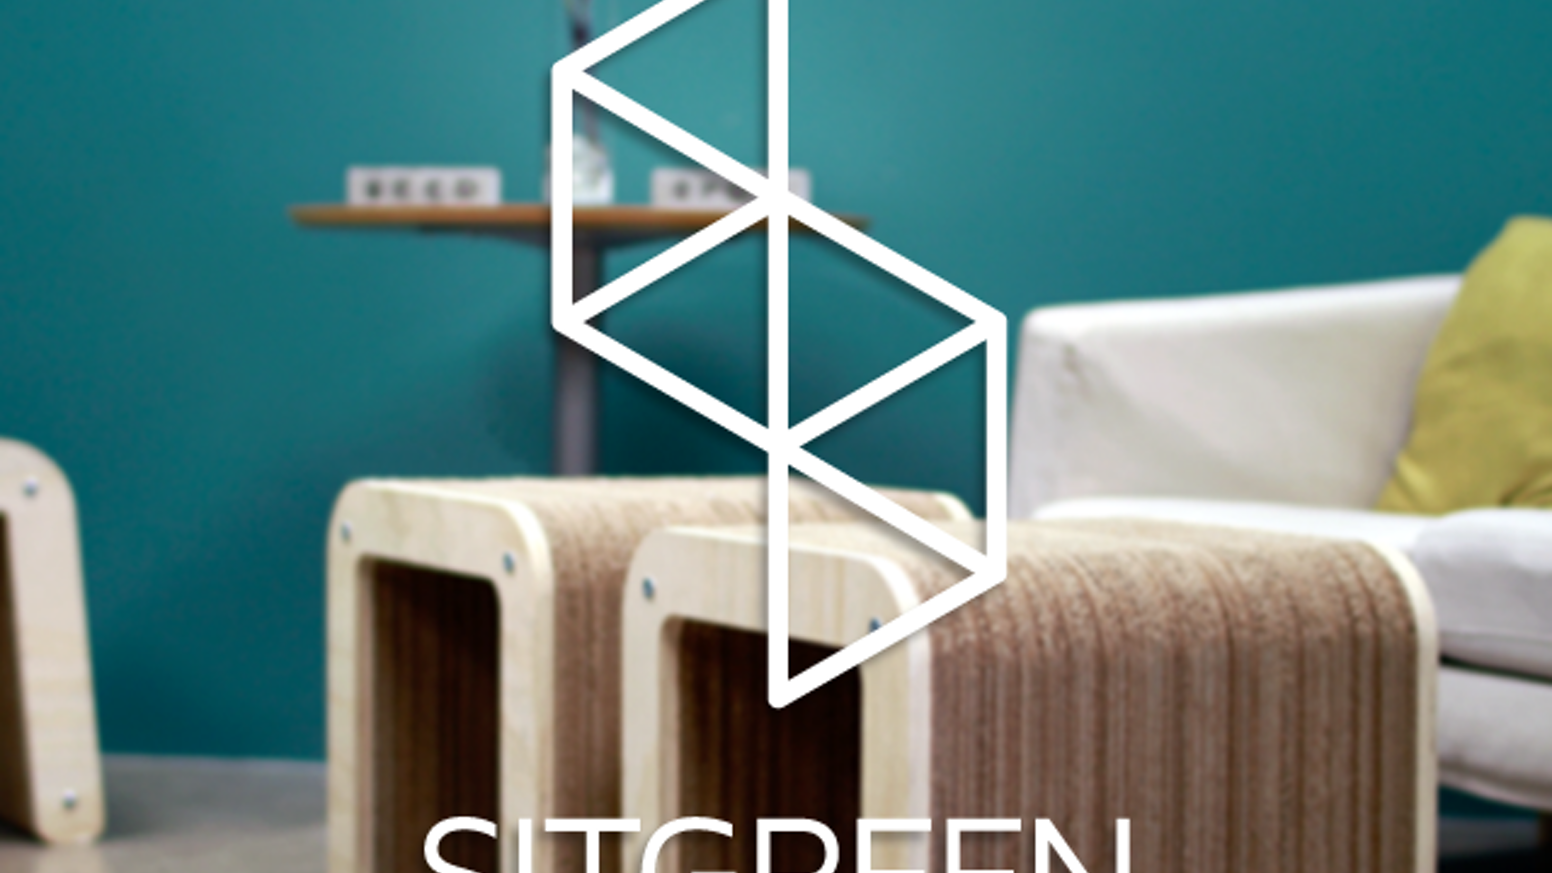 100% sustainable - insanely strong - cardboard furniture